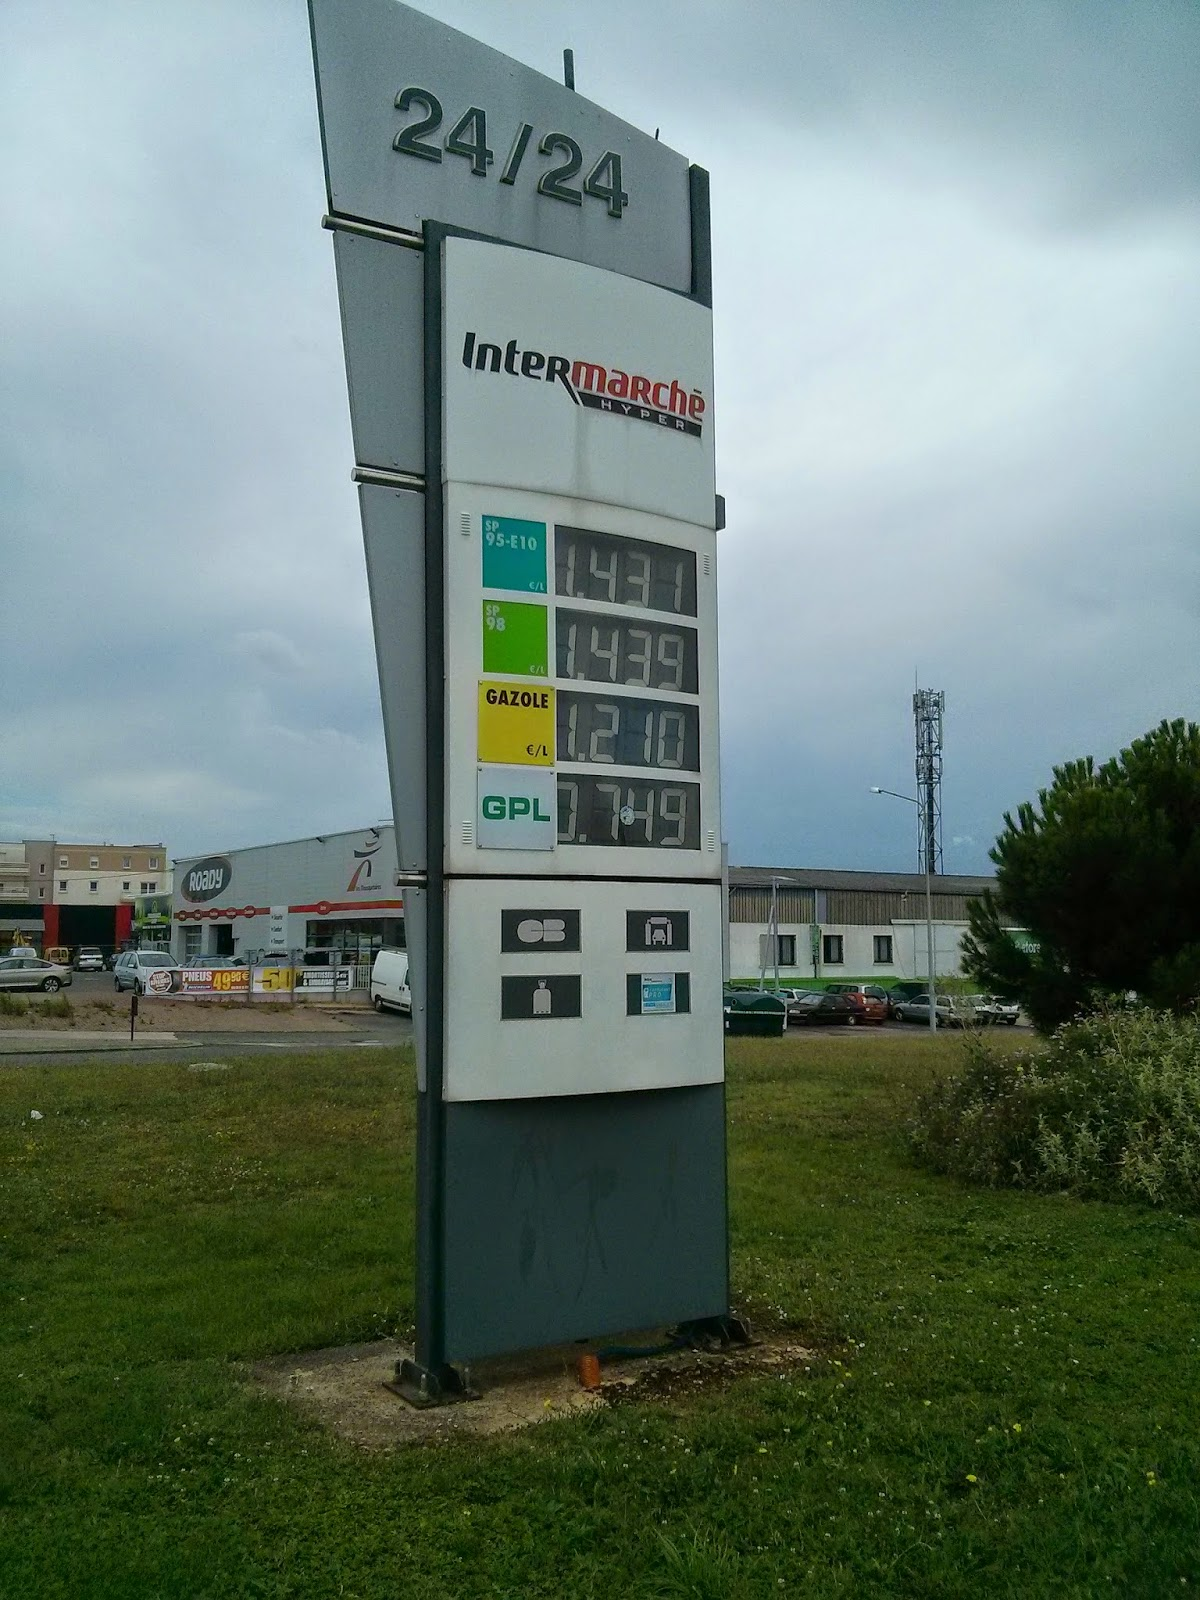 Cheapest French diesel prices - How Much Does Diesel Cost in France?